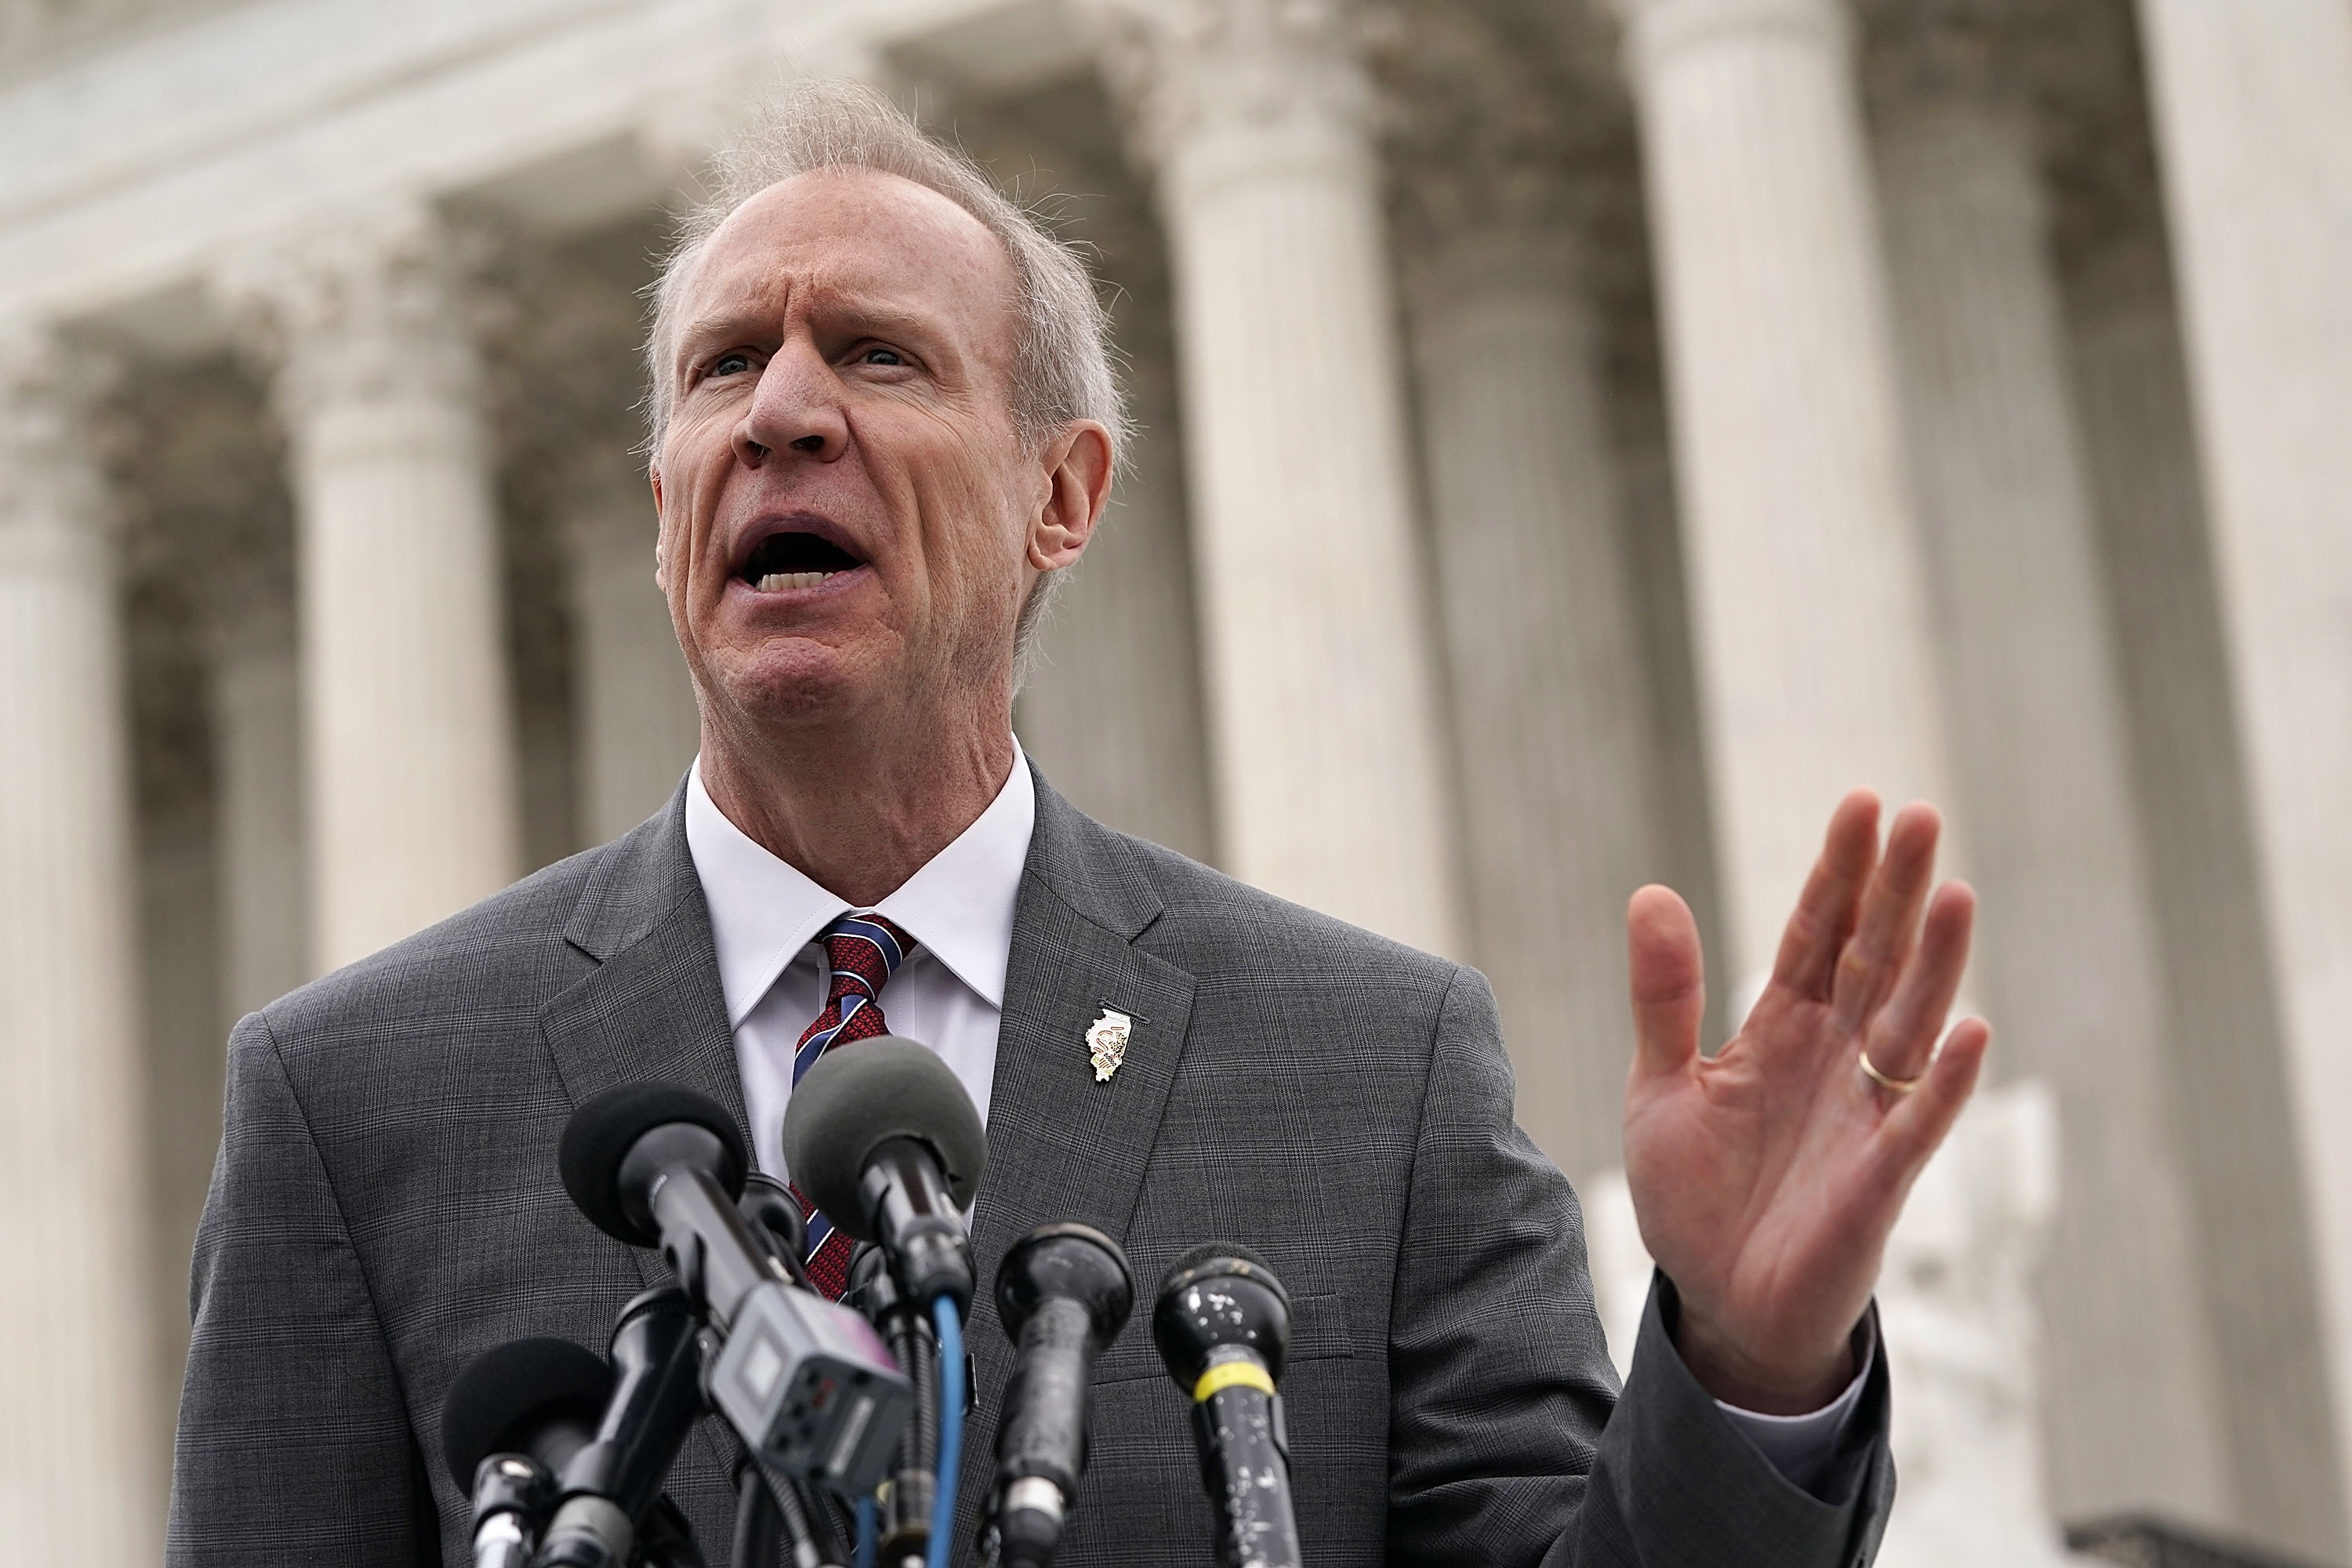 Governor of Illinois Bruce Rauner speaks to members of the media in front of the U.S. Supreme Court after a hearing on February 26, 2018 in Washington, DC. Alex Wong/Getty Images